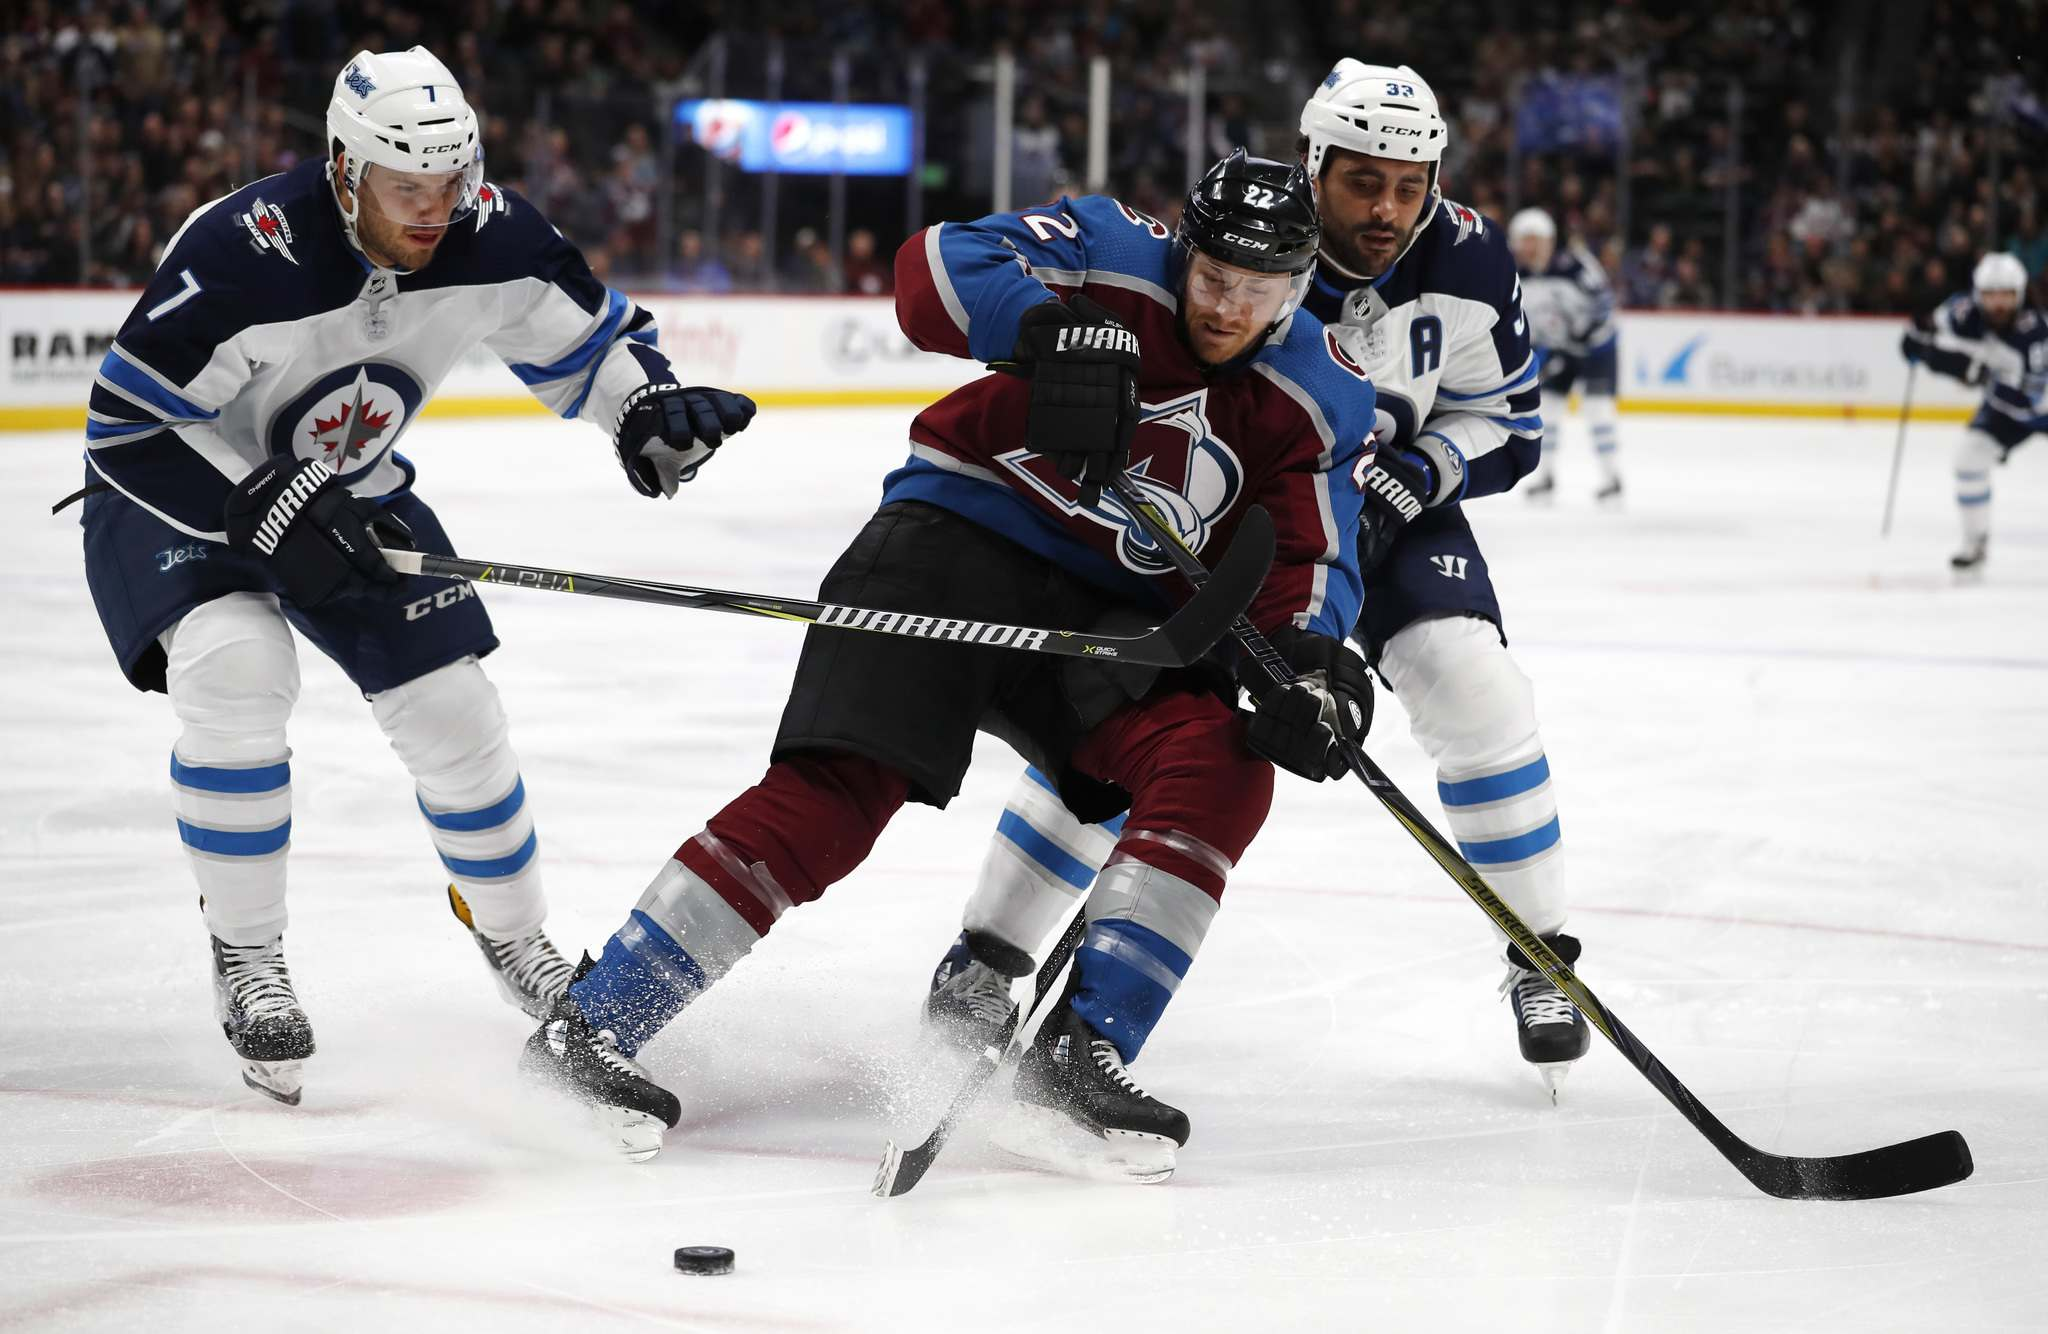 <p>Colorado Avalanche center Colin Wilson, center, is tied up by Winnipeg Jets defensemen Ben Chiarot, left, and Dustin Byfuglien while pursuing the puck in the first period of an NHL hockey game Tuesday, Jan. 2, 2018, in Denver. </p>